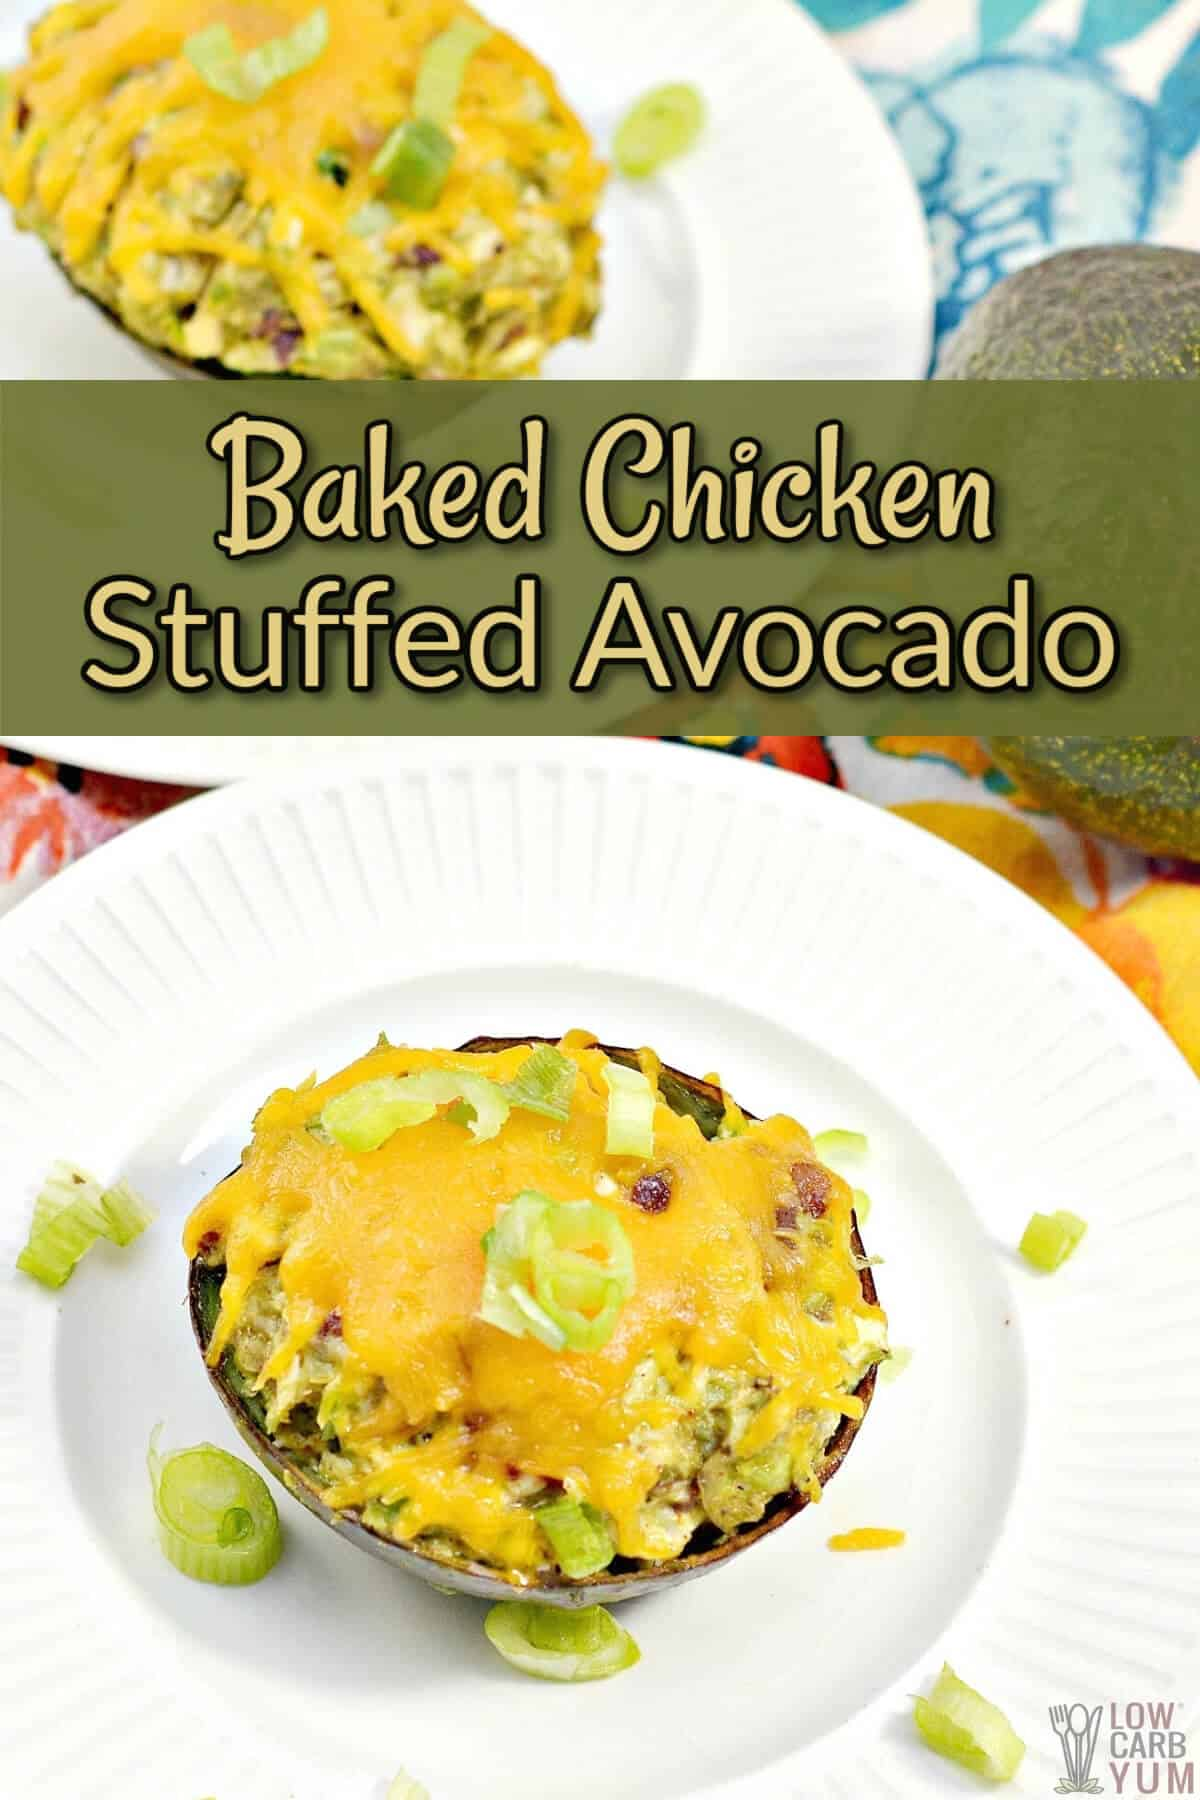 baked chicken stuffed avocado cover image